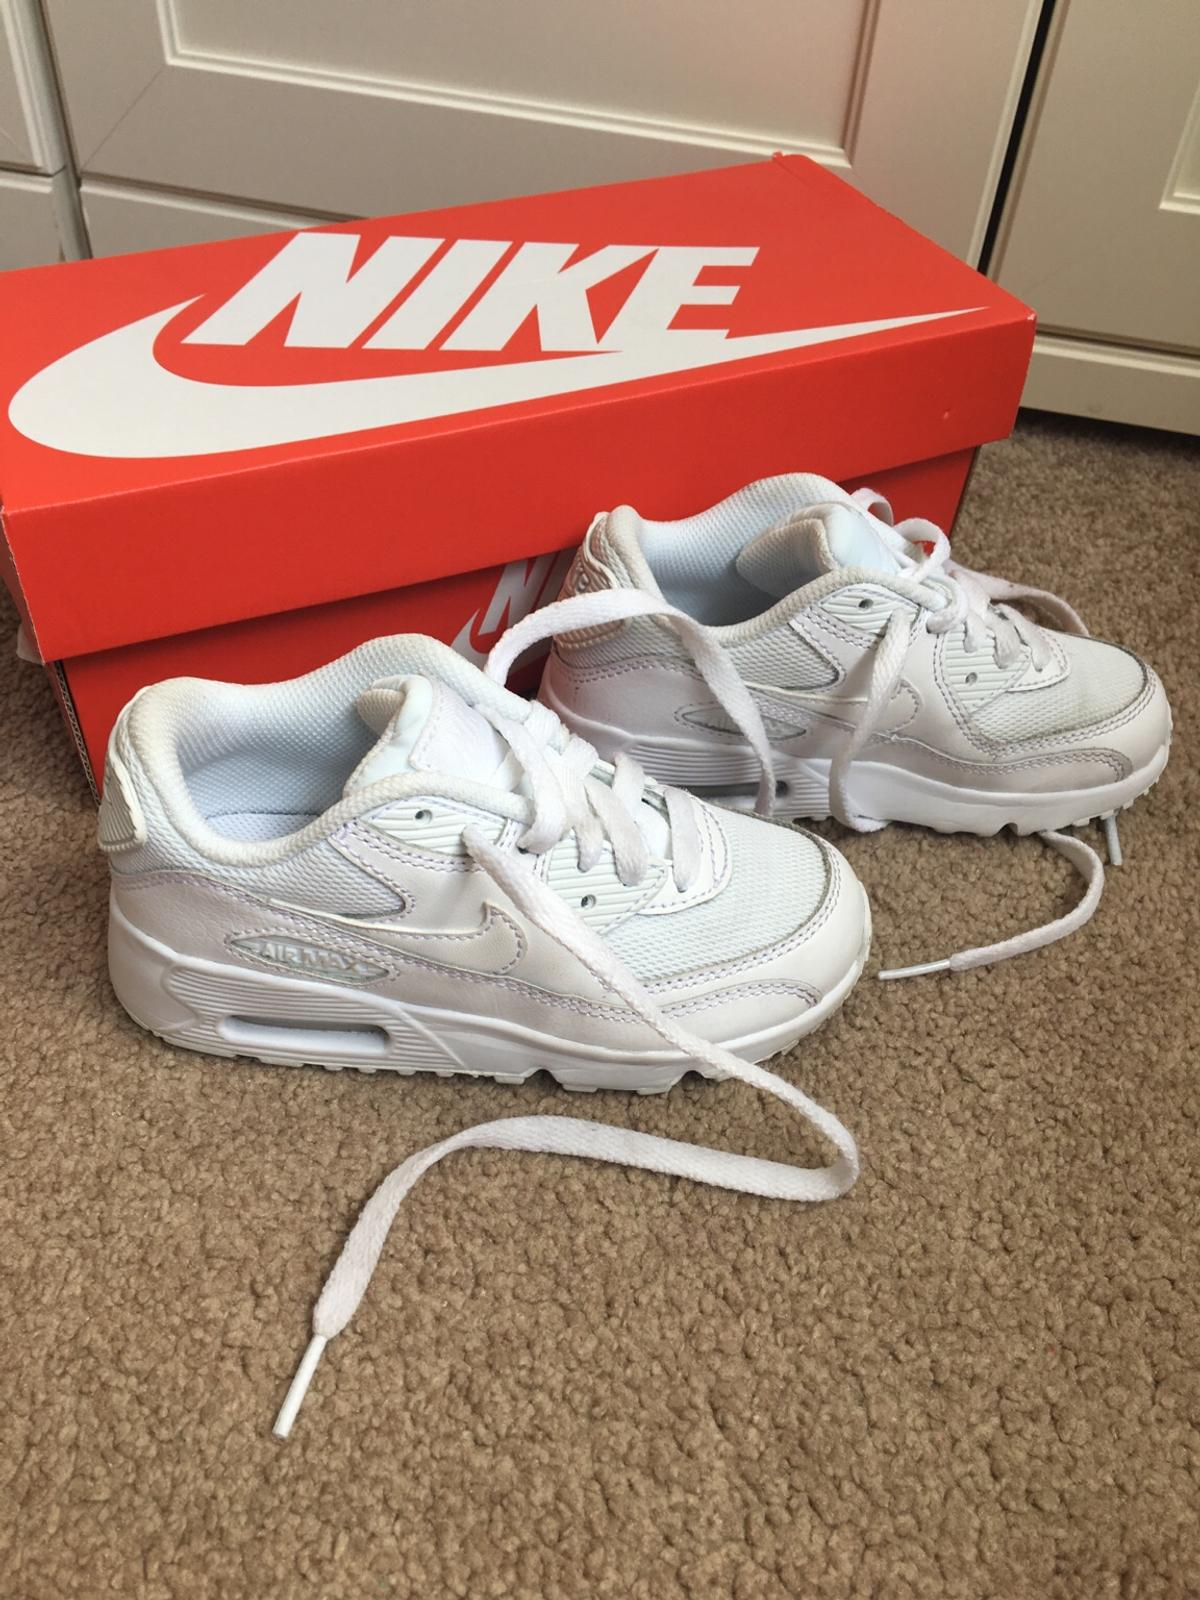 Nike Air Max 90 Life Style Sports